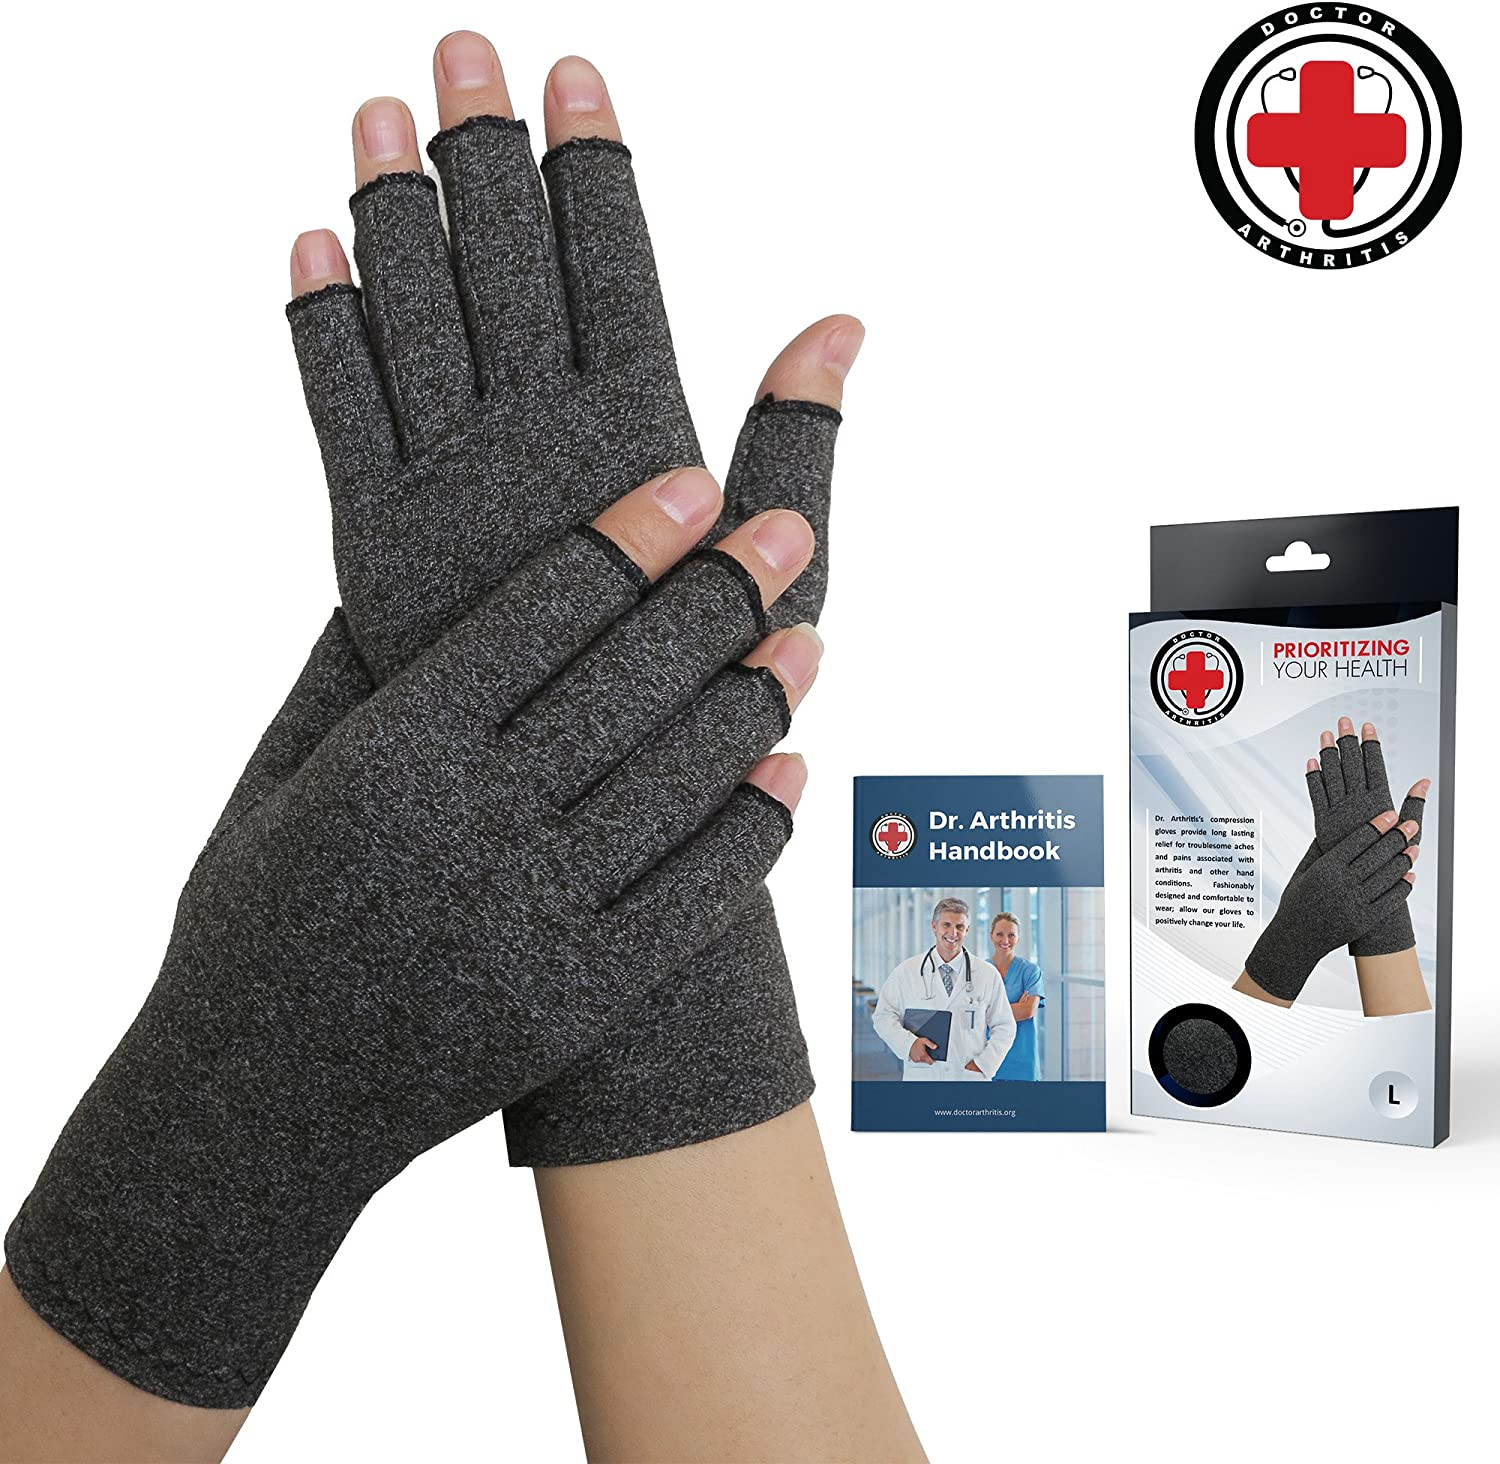 Doctor Developed Compression Arthritis Gloves - Doctor Written Handbook Included: Relieve Arthritis Symptoms, Raynauds Disease & Carpal Tunnel (L)